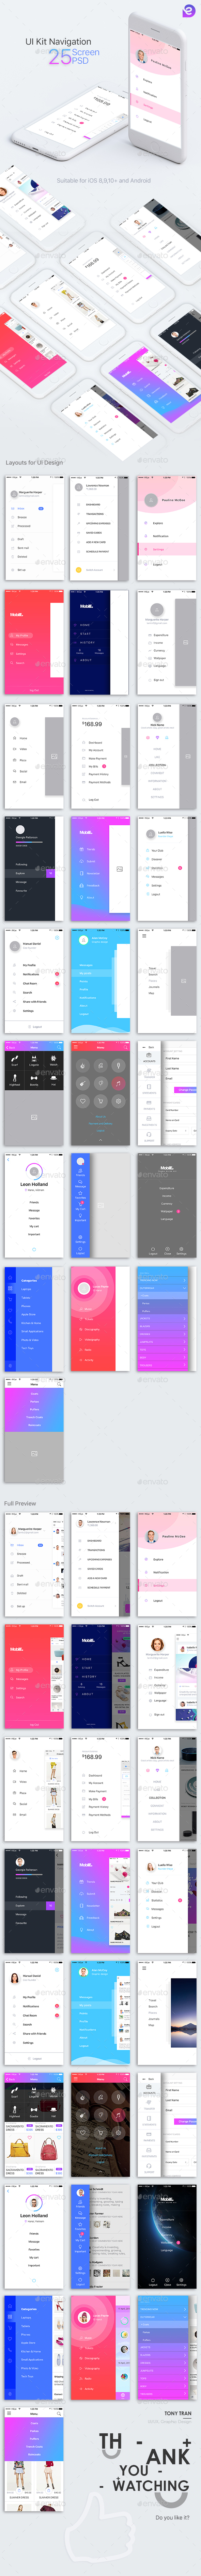 Mobile Theme UI/UX Kit (User Interfaces)